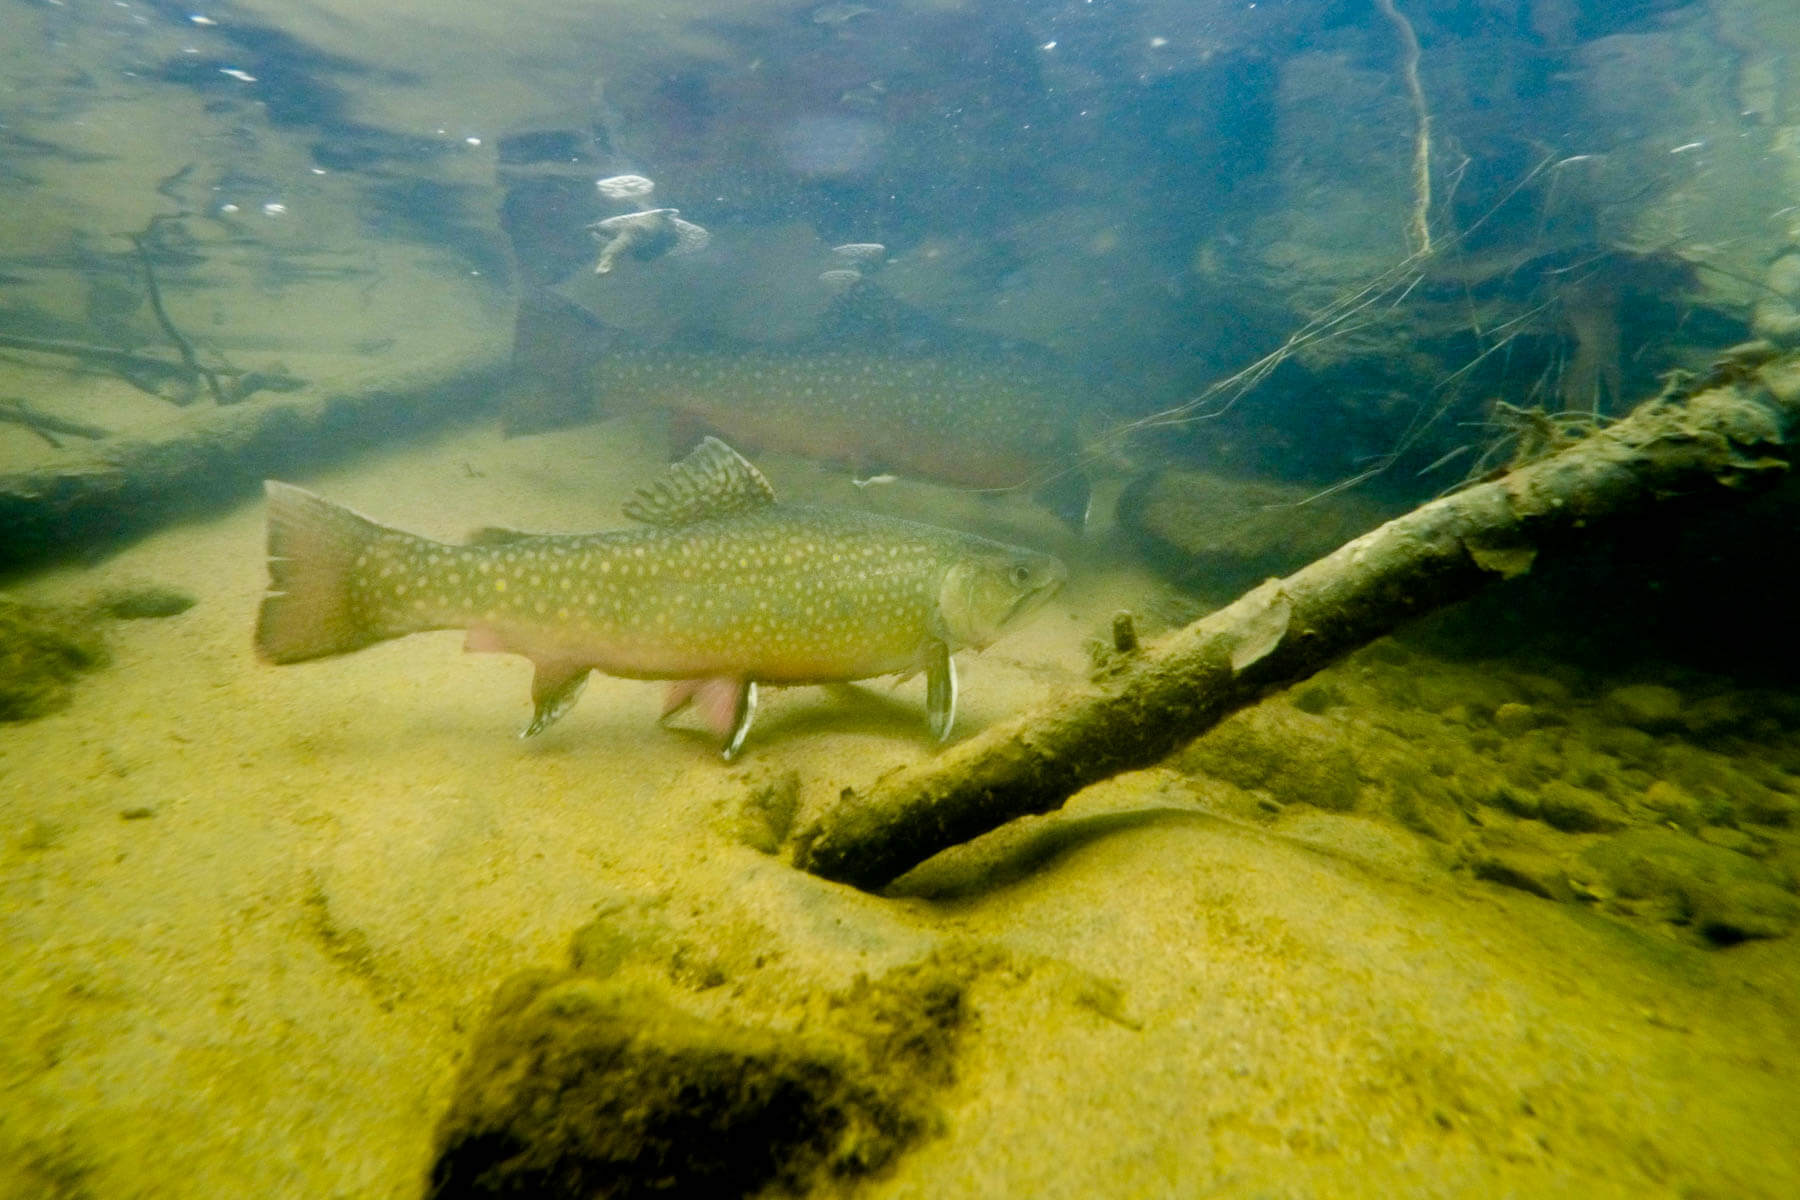 Brook trout in Piney Run